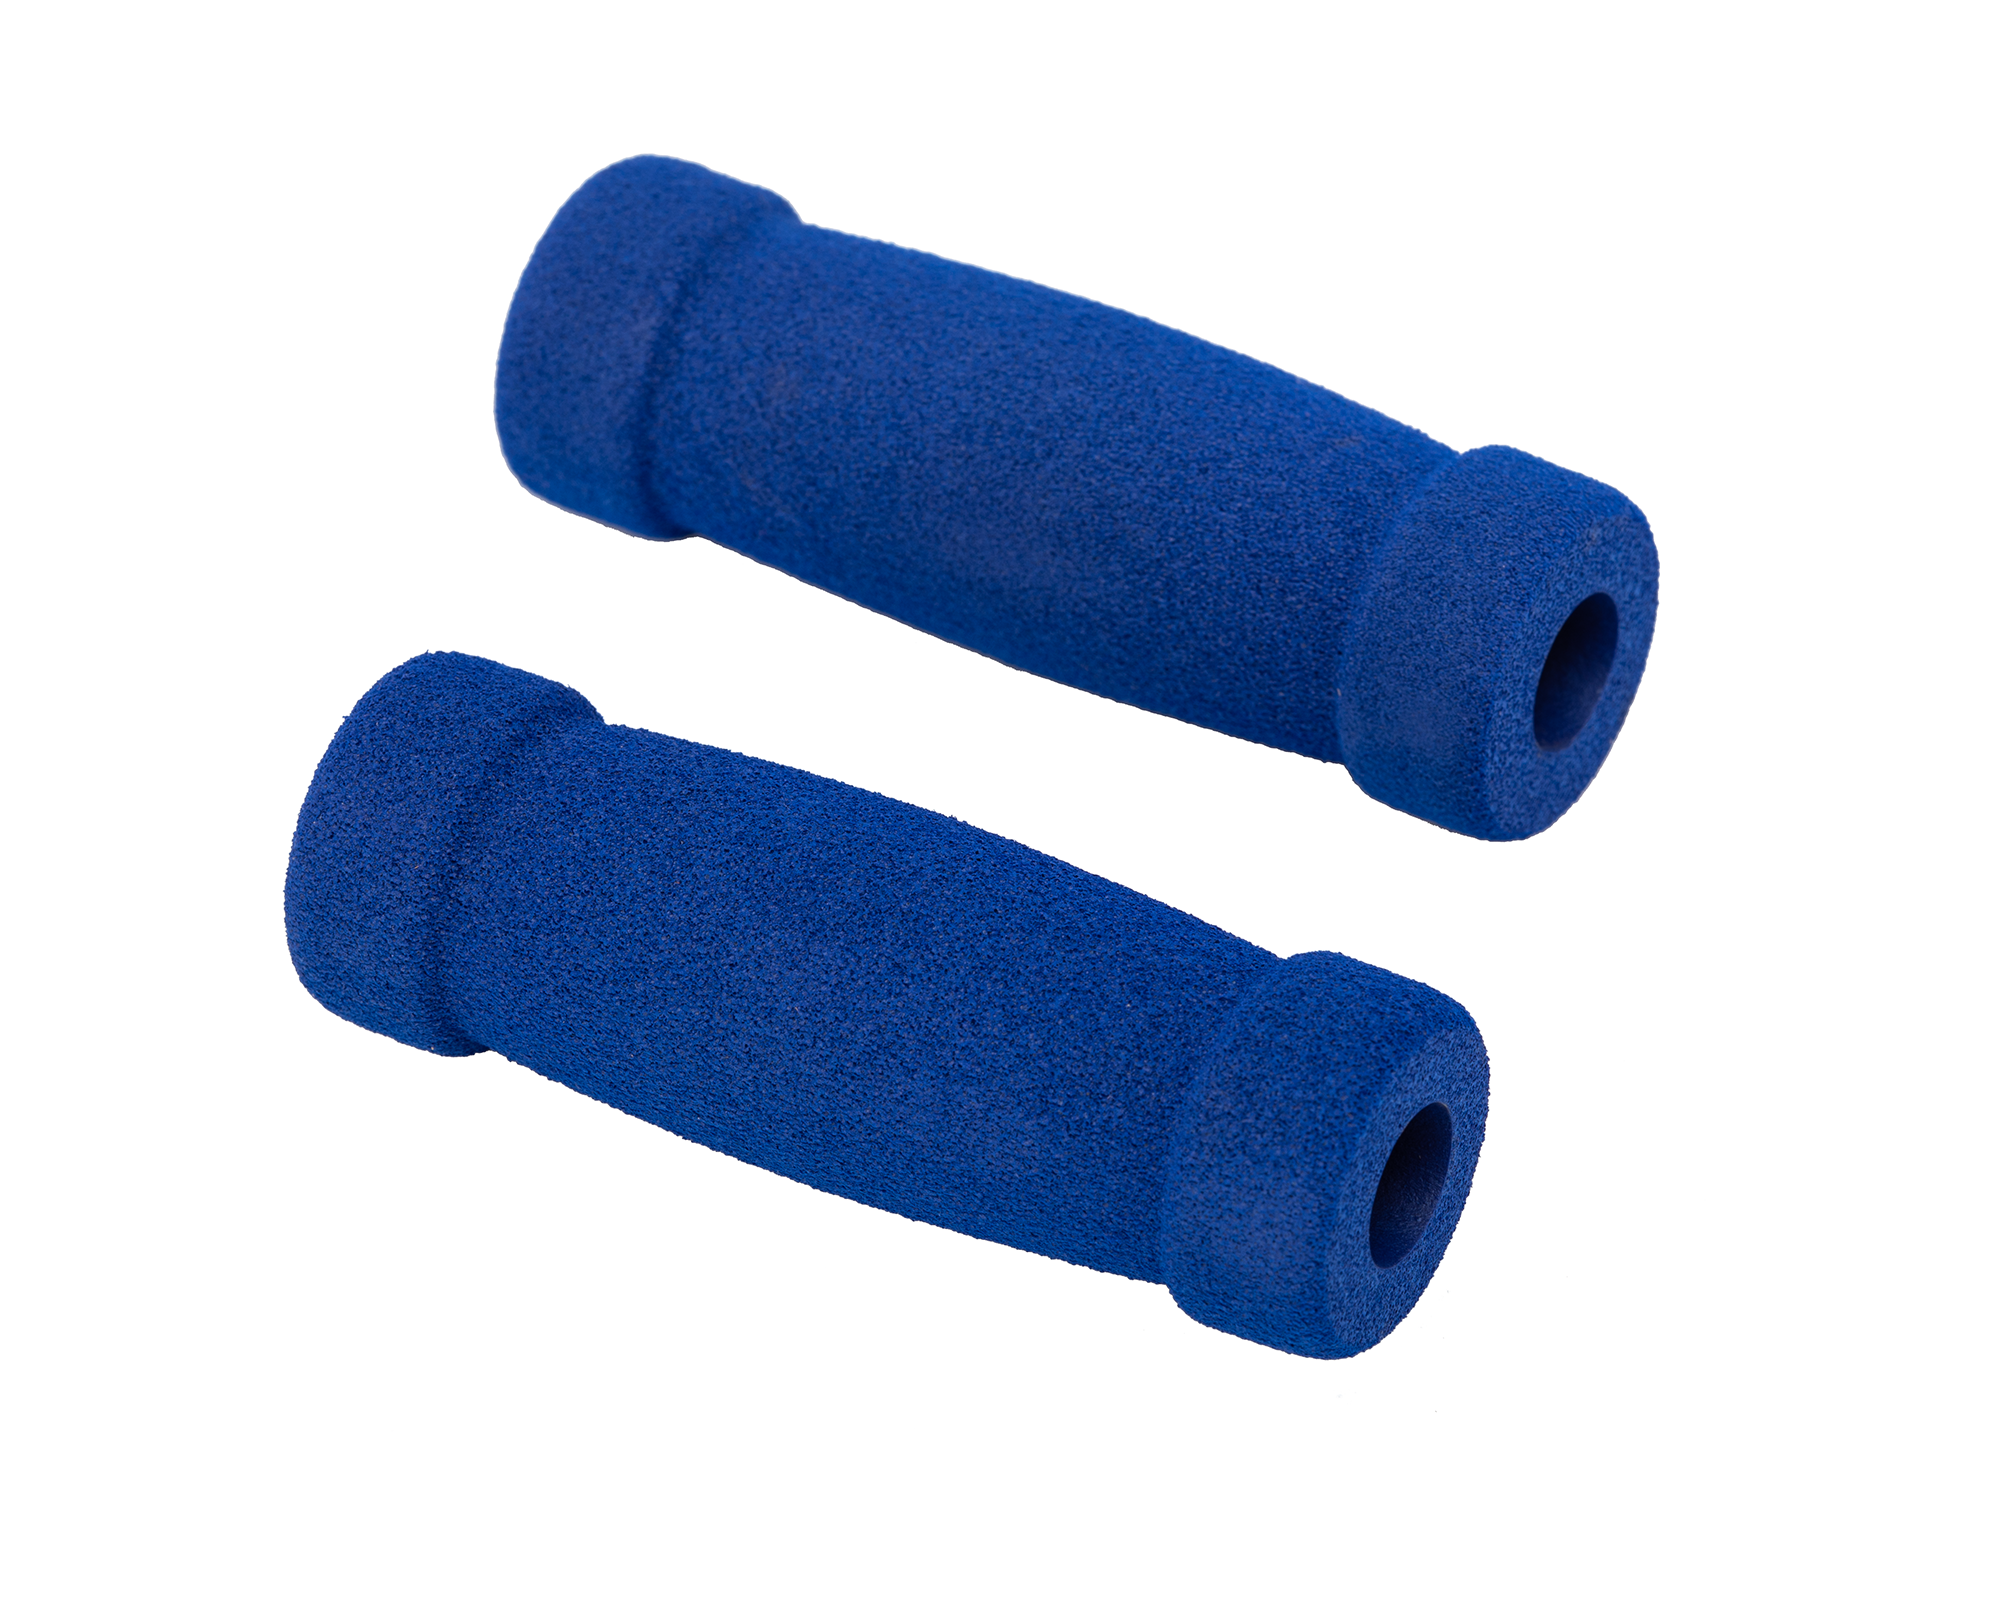 Razor Foam Handlebar Grip - Blue, Set of 2